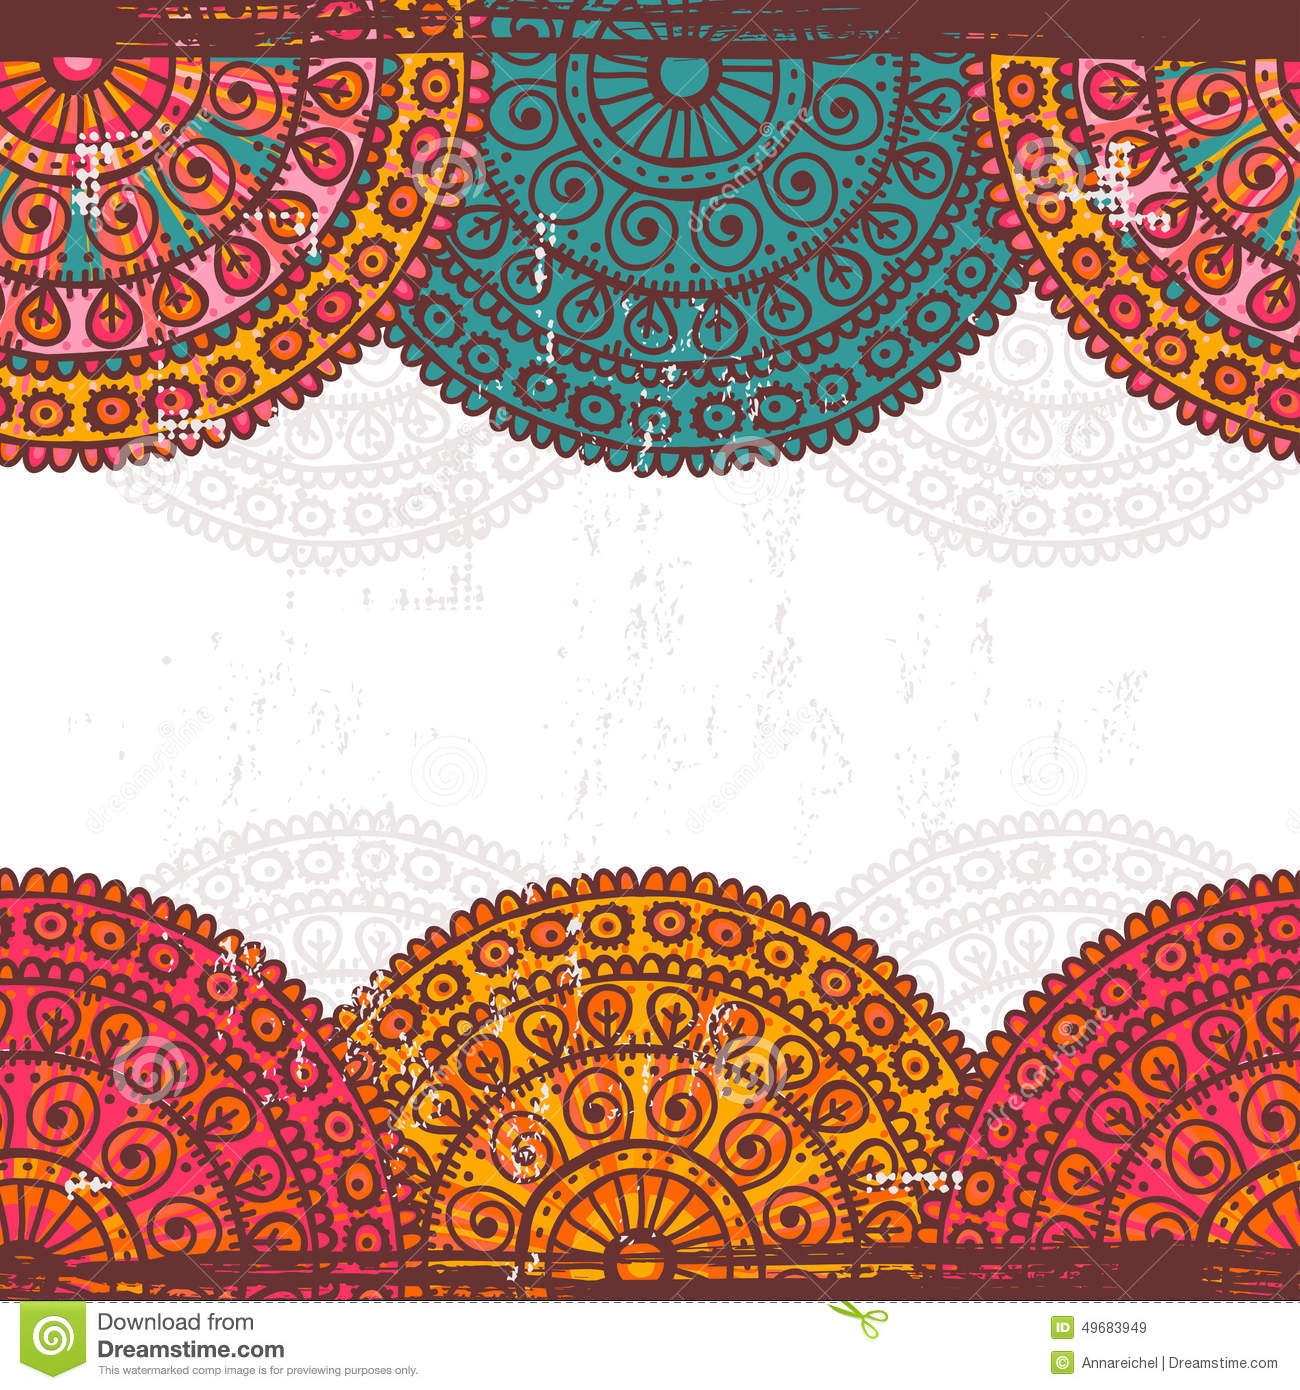 E Lily Menu Card furthermore Abstract Orange Circle With Swirl Border Download Royalty Free Vector File Eps moreover Frame With Vintage Golden Greek Ornament Download Royalty Free Vector File Eps besides Img Page in addition Hand Drawn Lace Mandalas Ethnic Seamless Border All Objects Conveniently Grouped Easily Editable. on swirl border